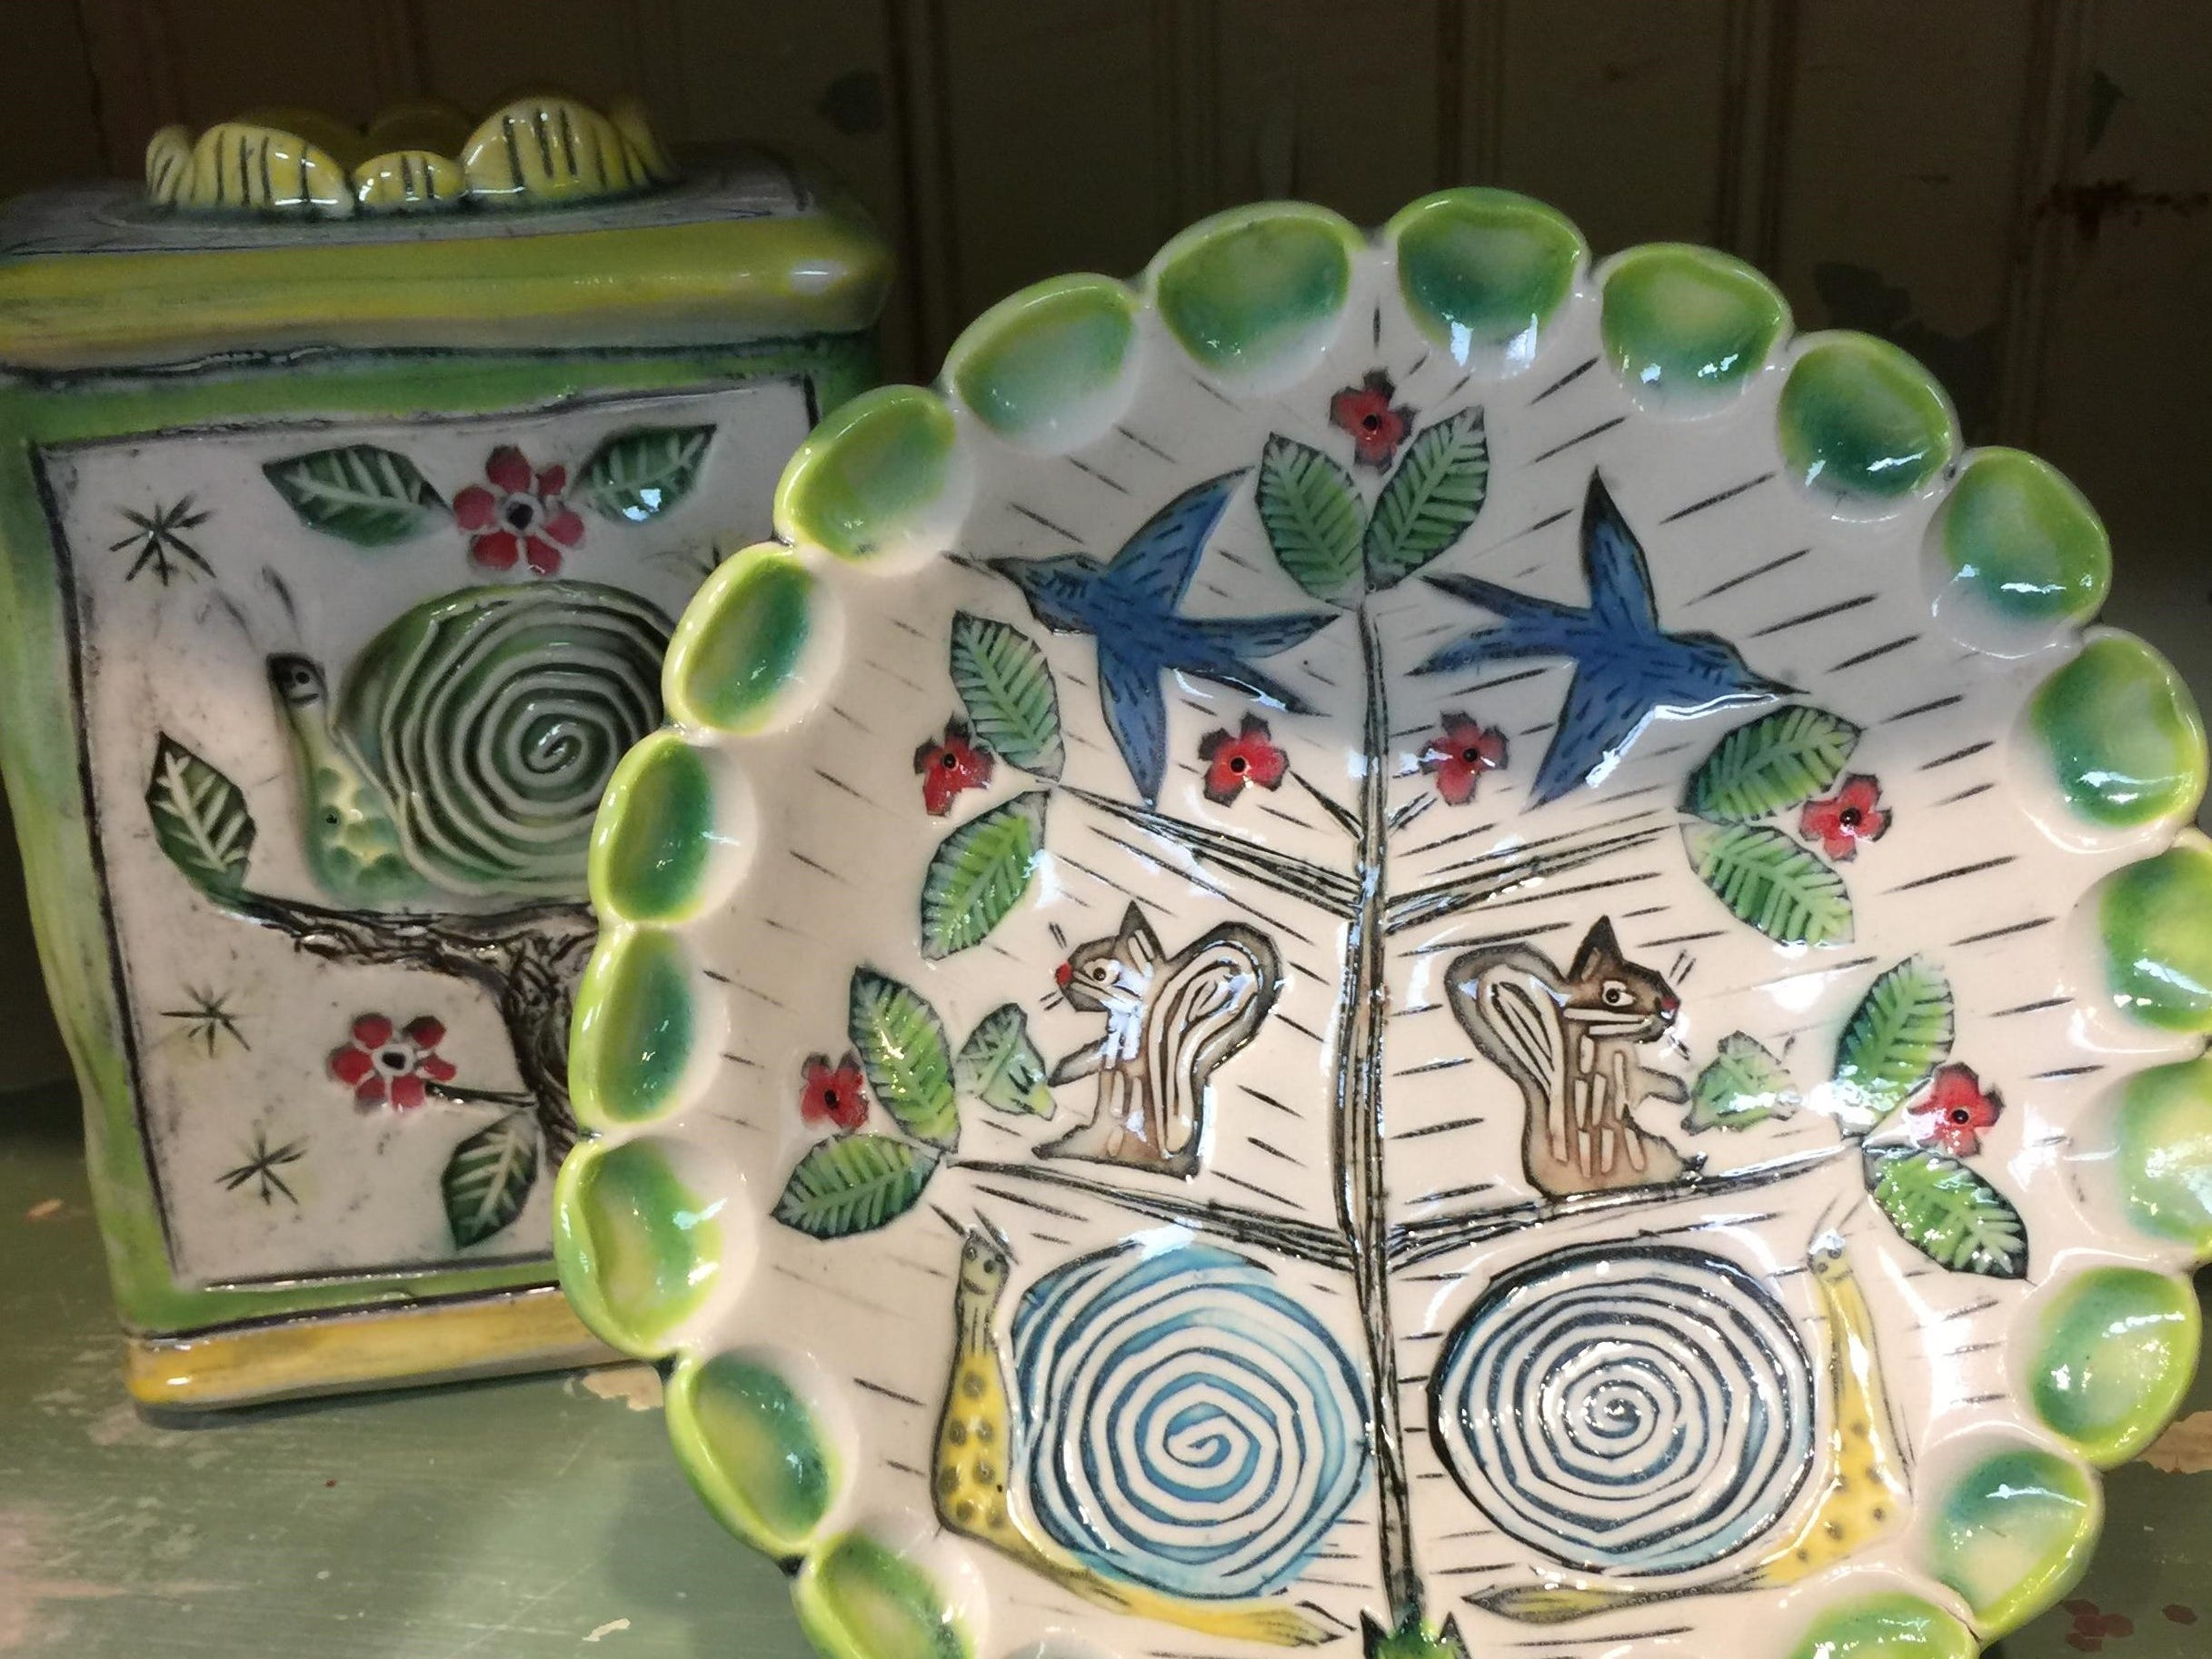 Marna McGlinn Ceramics at the Yellow Door Art Market in Berkley ooze a sense of fun and whimsy.